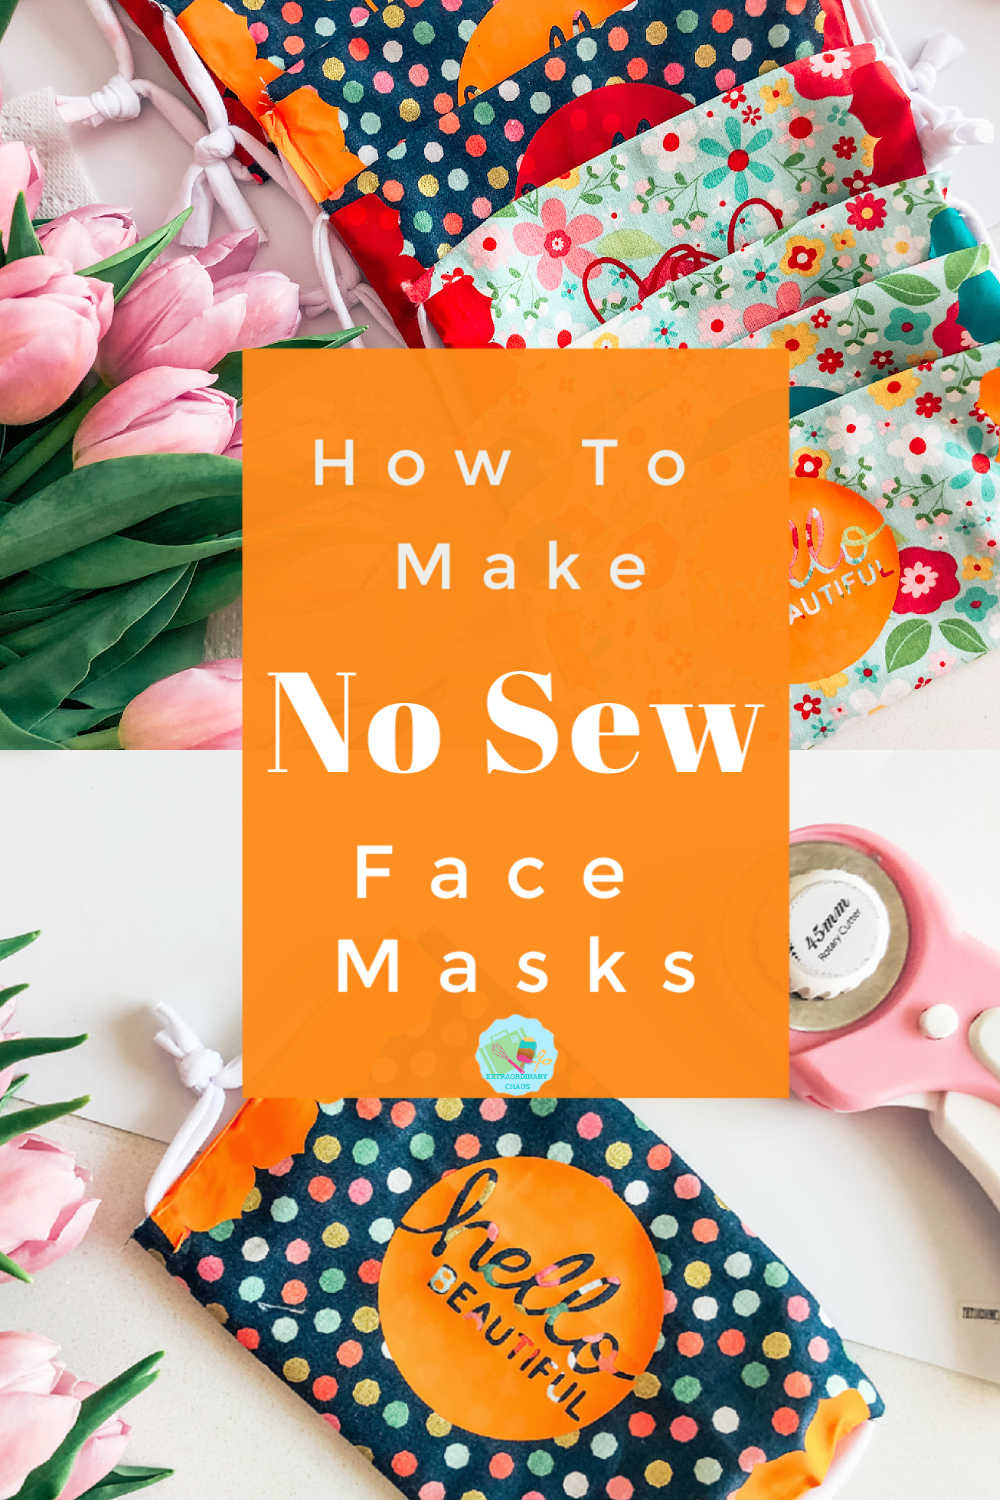 How to make comfy no sew face masks with cricut iron on vinyl #cricutmakes #cricutprojects #nosewfacemaks